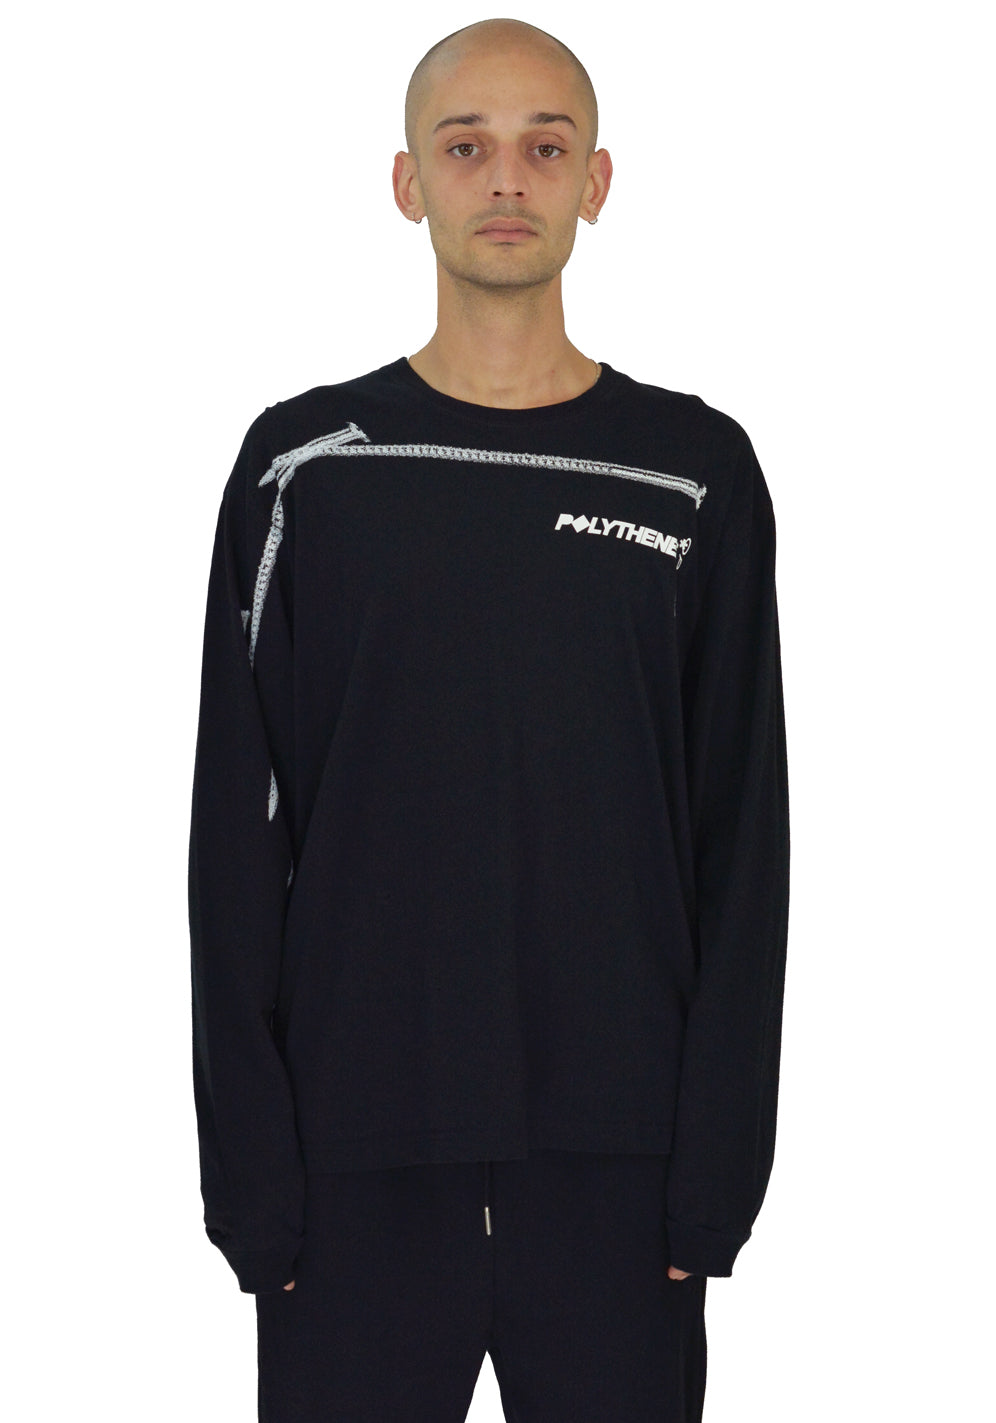 POLYTHENE* OPTICS POLS03WHTB LONG SLEEVE T-SHIRT BLACK - DOSHABURI Shop